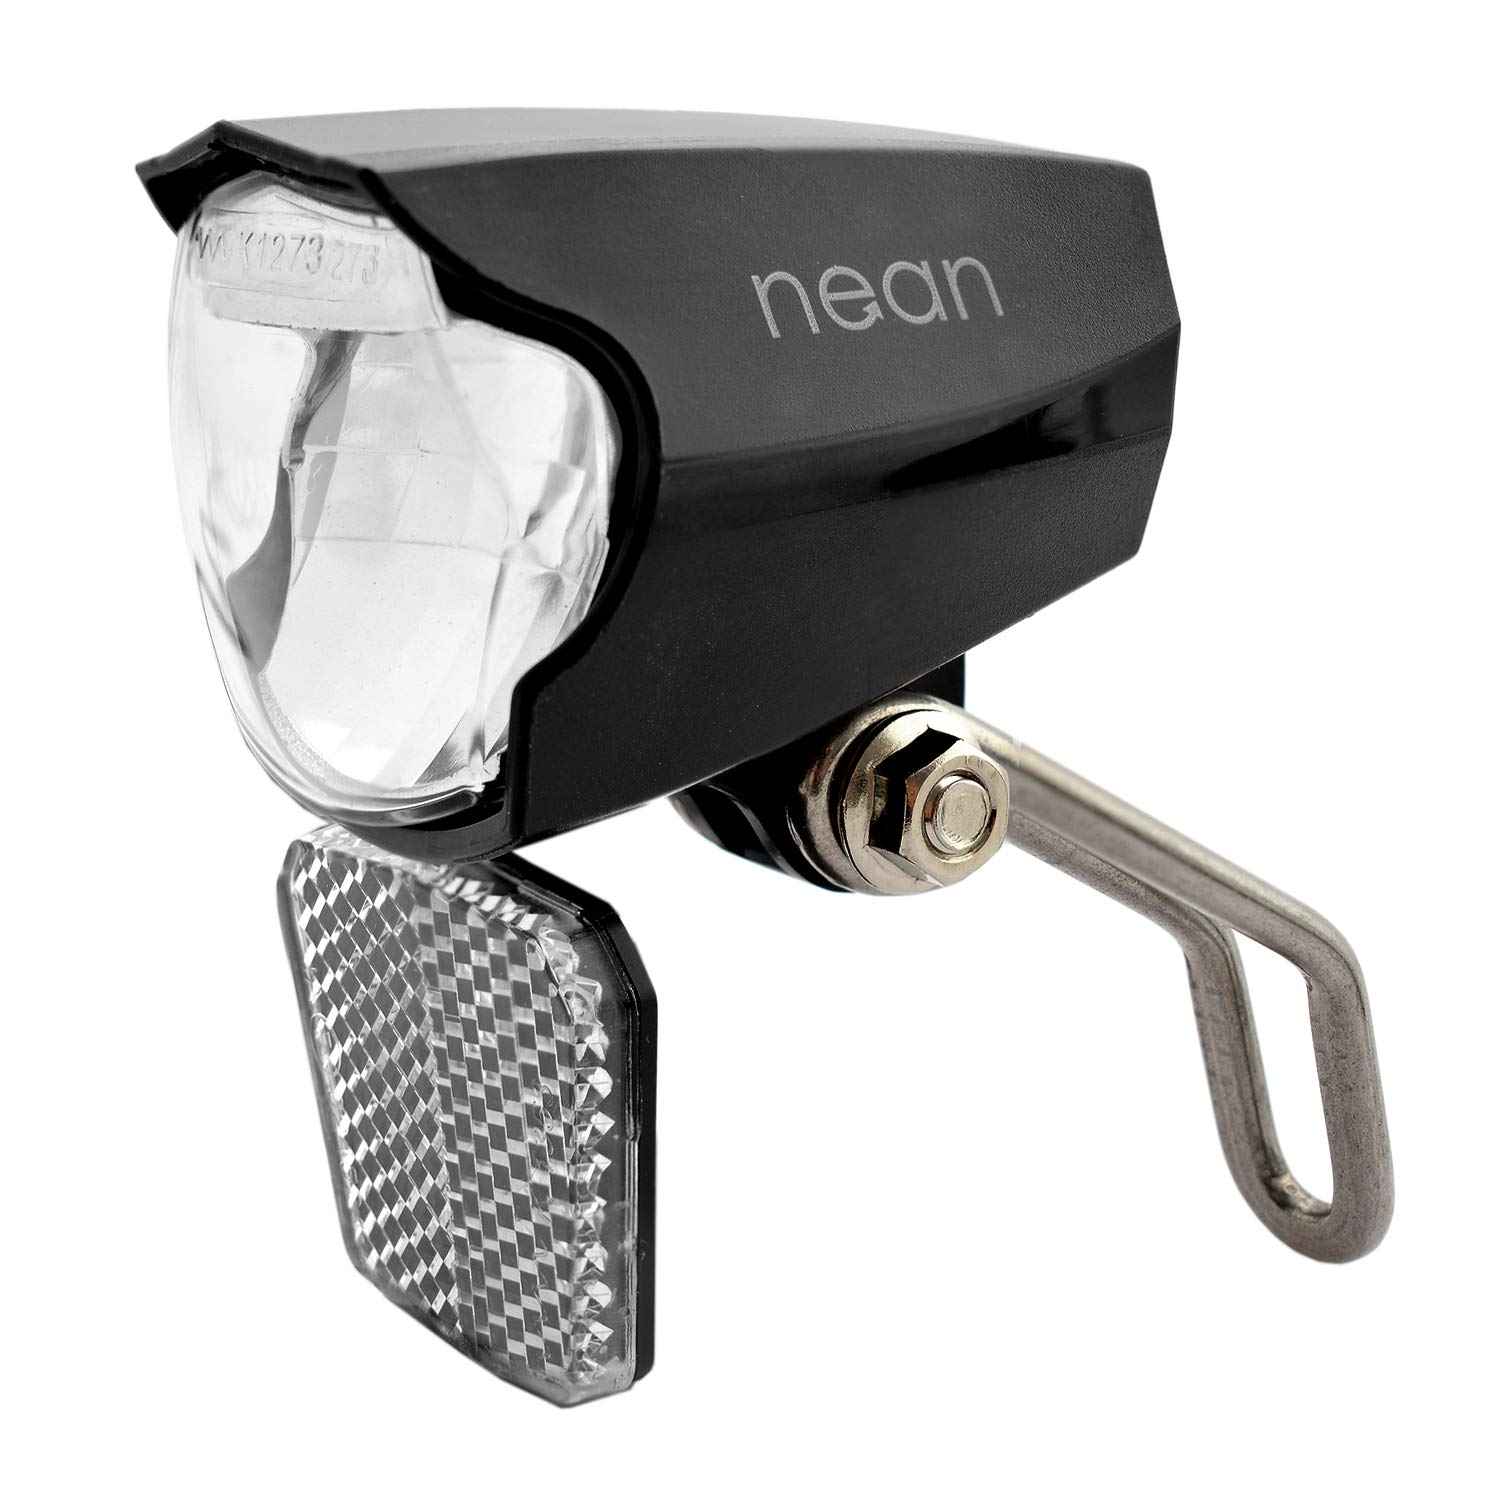 5 candela large area reflector StVZO approval NEAN bicycle dynamo rear light with parking light